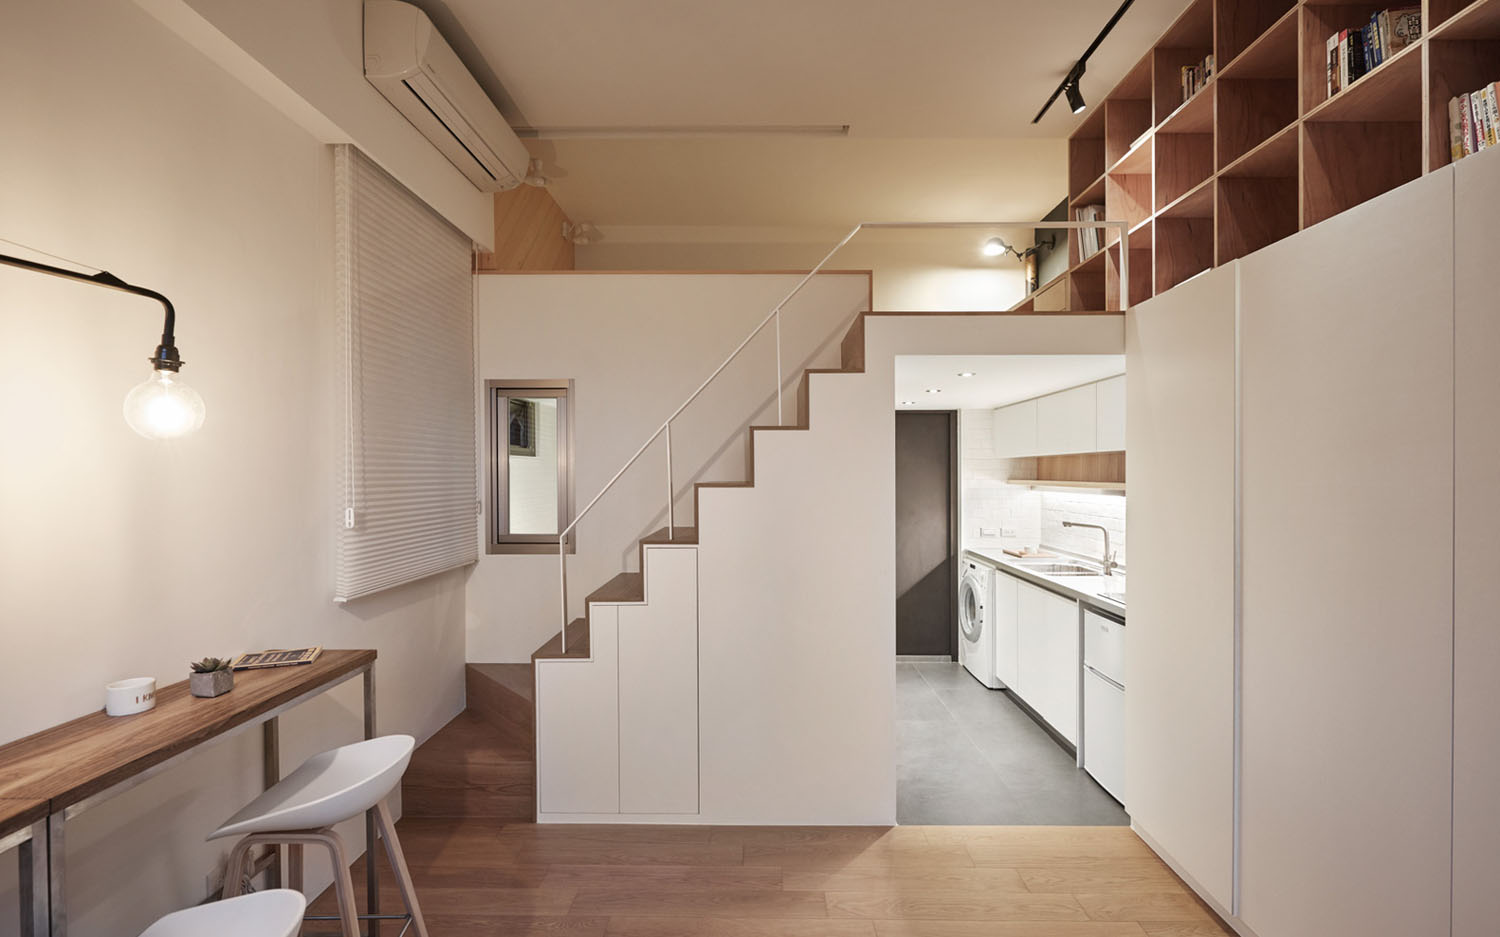 Studio Apartment Sleeping Solutions Tiny Studio Apartment In Taipei City With Sleeping Loft